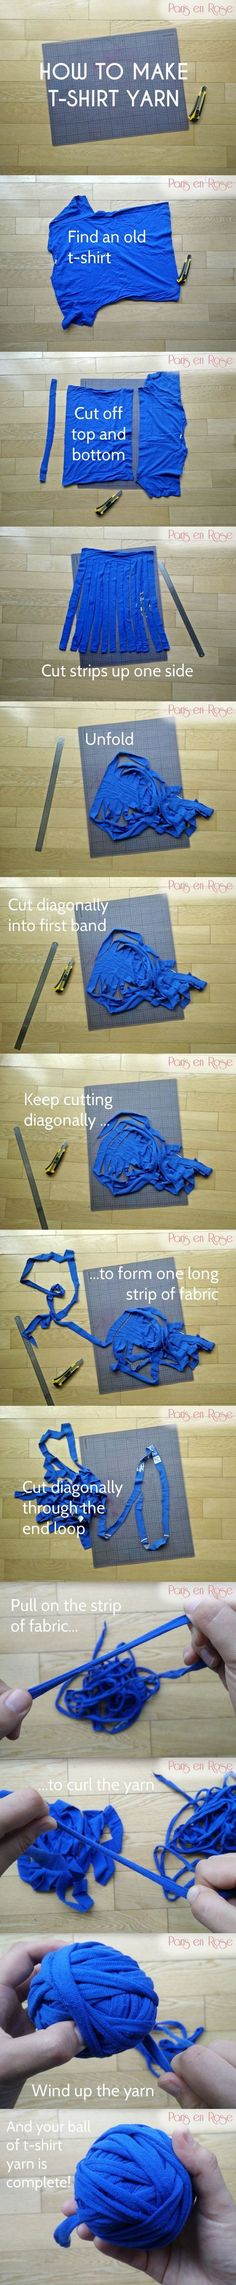 diy_crafts- How to make t-shirt yarn : recycle old t-shirst into something new by cutting them up to make yarn Yarn Projects, Knitting Projects, Crochet Projects, Sewing Projects, Sewing Tips, Crochet Crafts, Yarn Crafts, Fabric Crafts, Diy Crafts